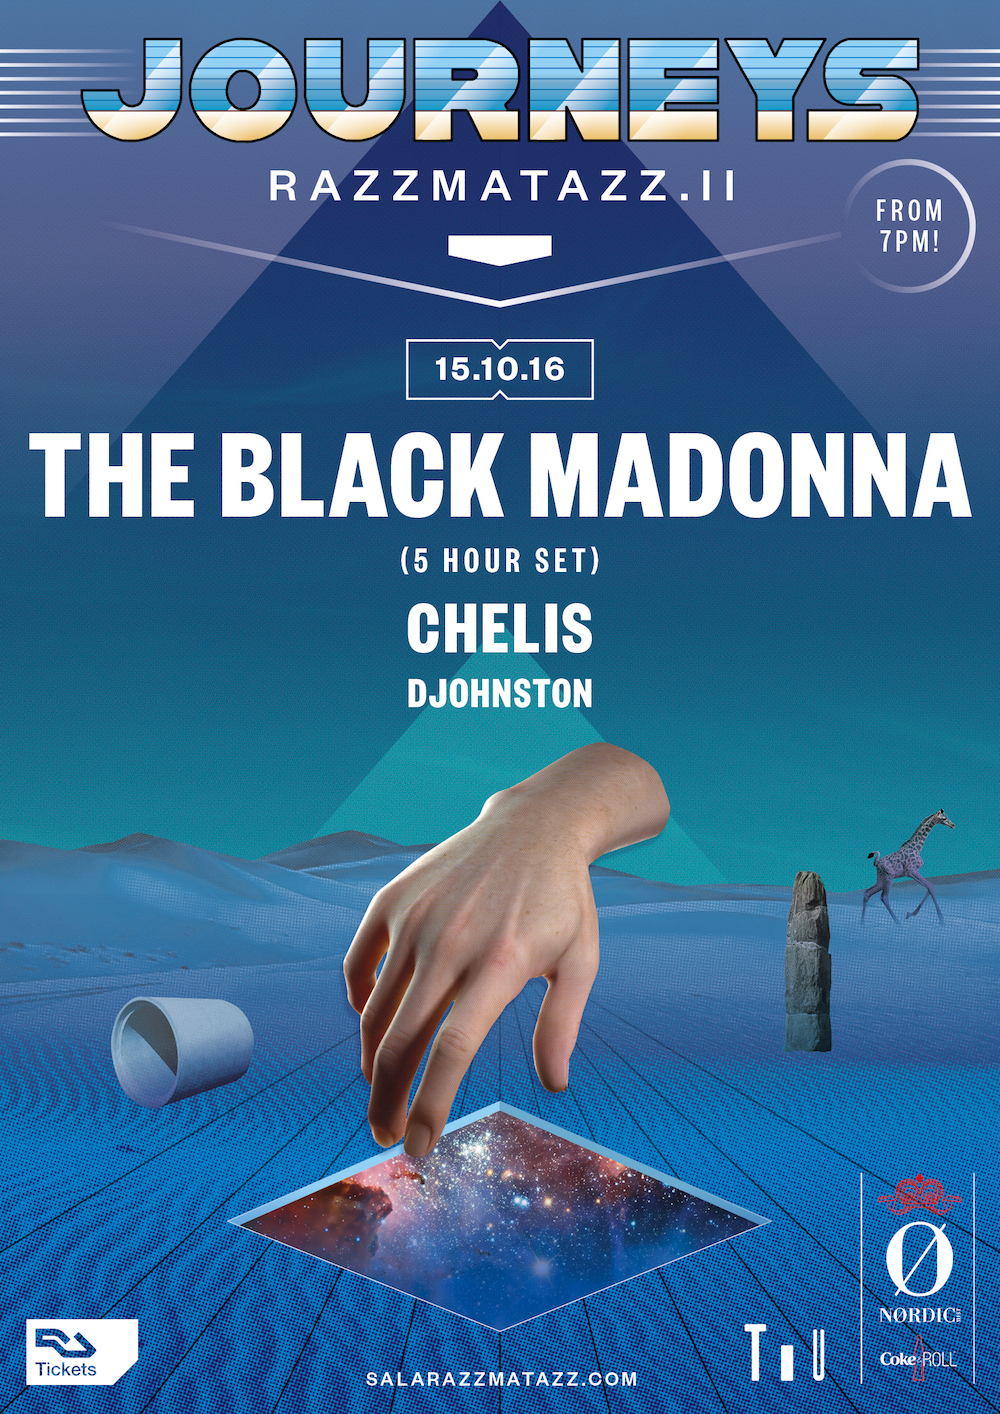 journeys-razzmatazz-the-black-madonna